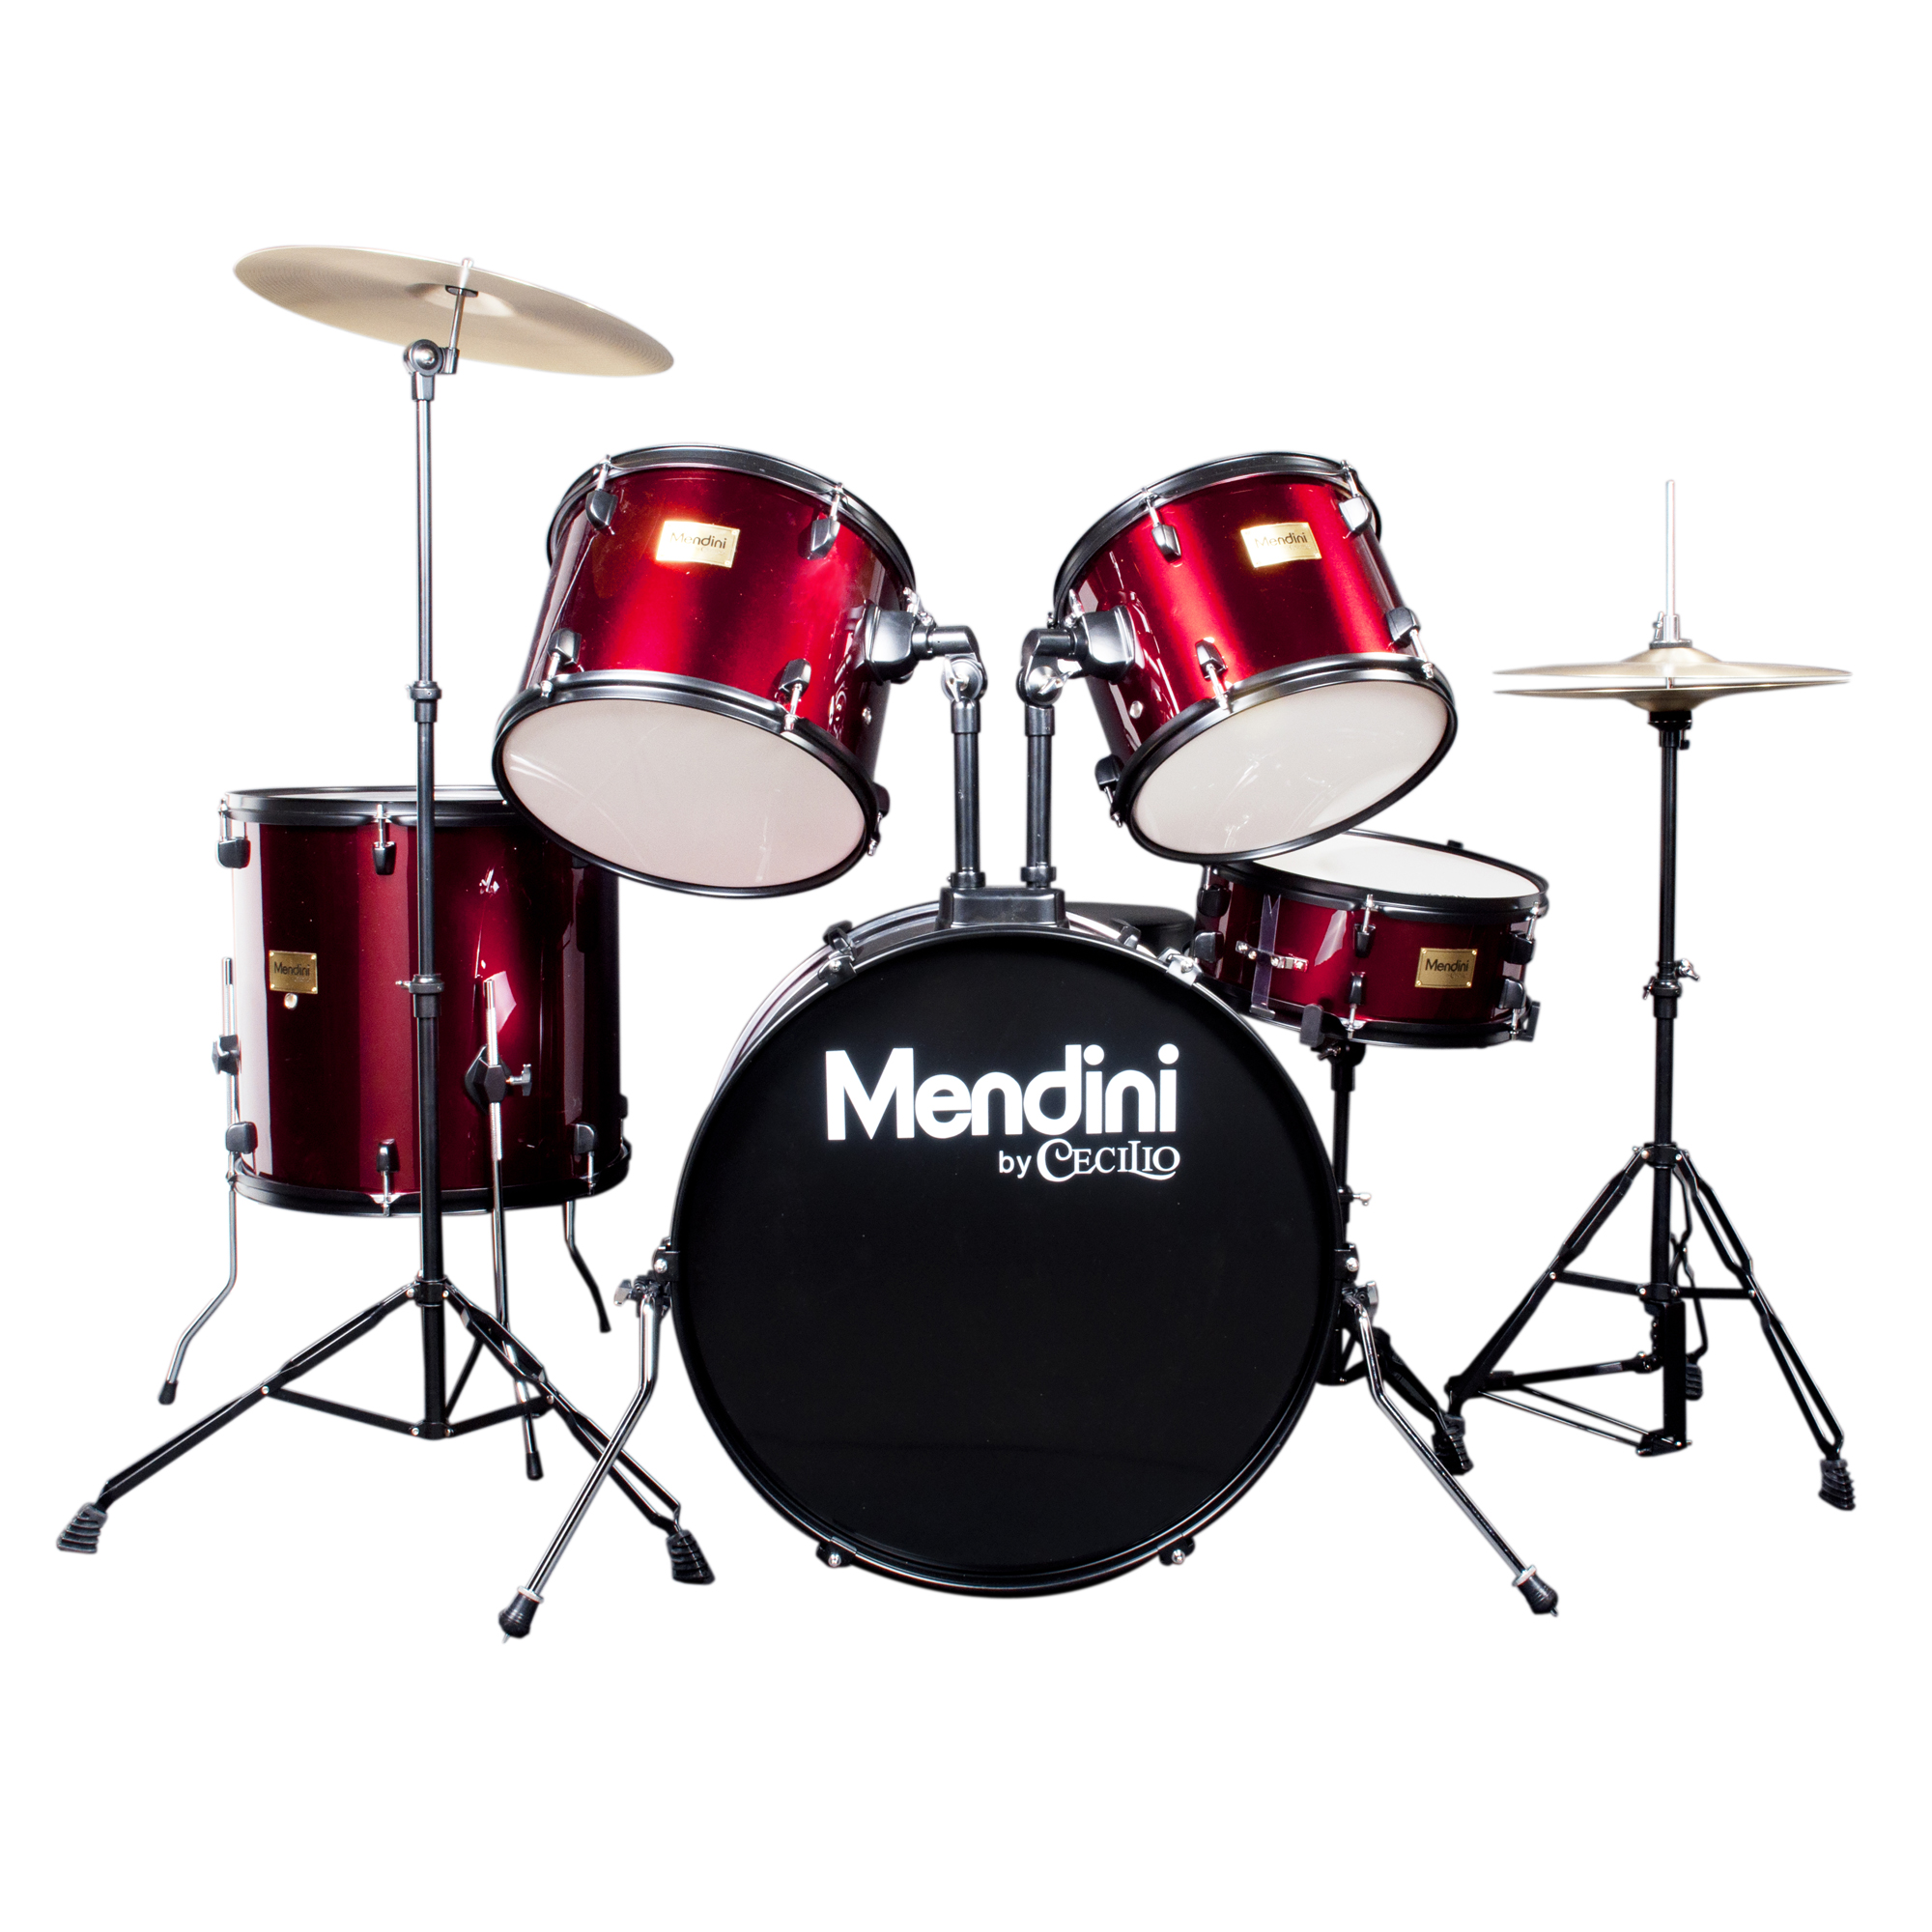 Mendini by Cecilio Complete Full Size 5-Piece Adult Drum Set w/ Cymbals Pedal Throne Sticks, Metallic Bright Red MDS80-BR